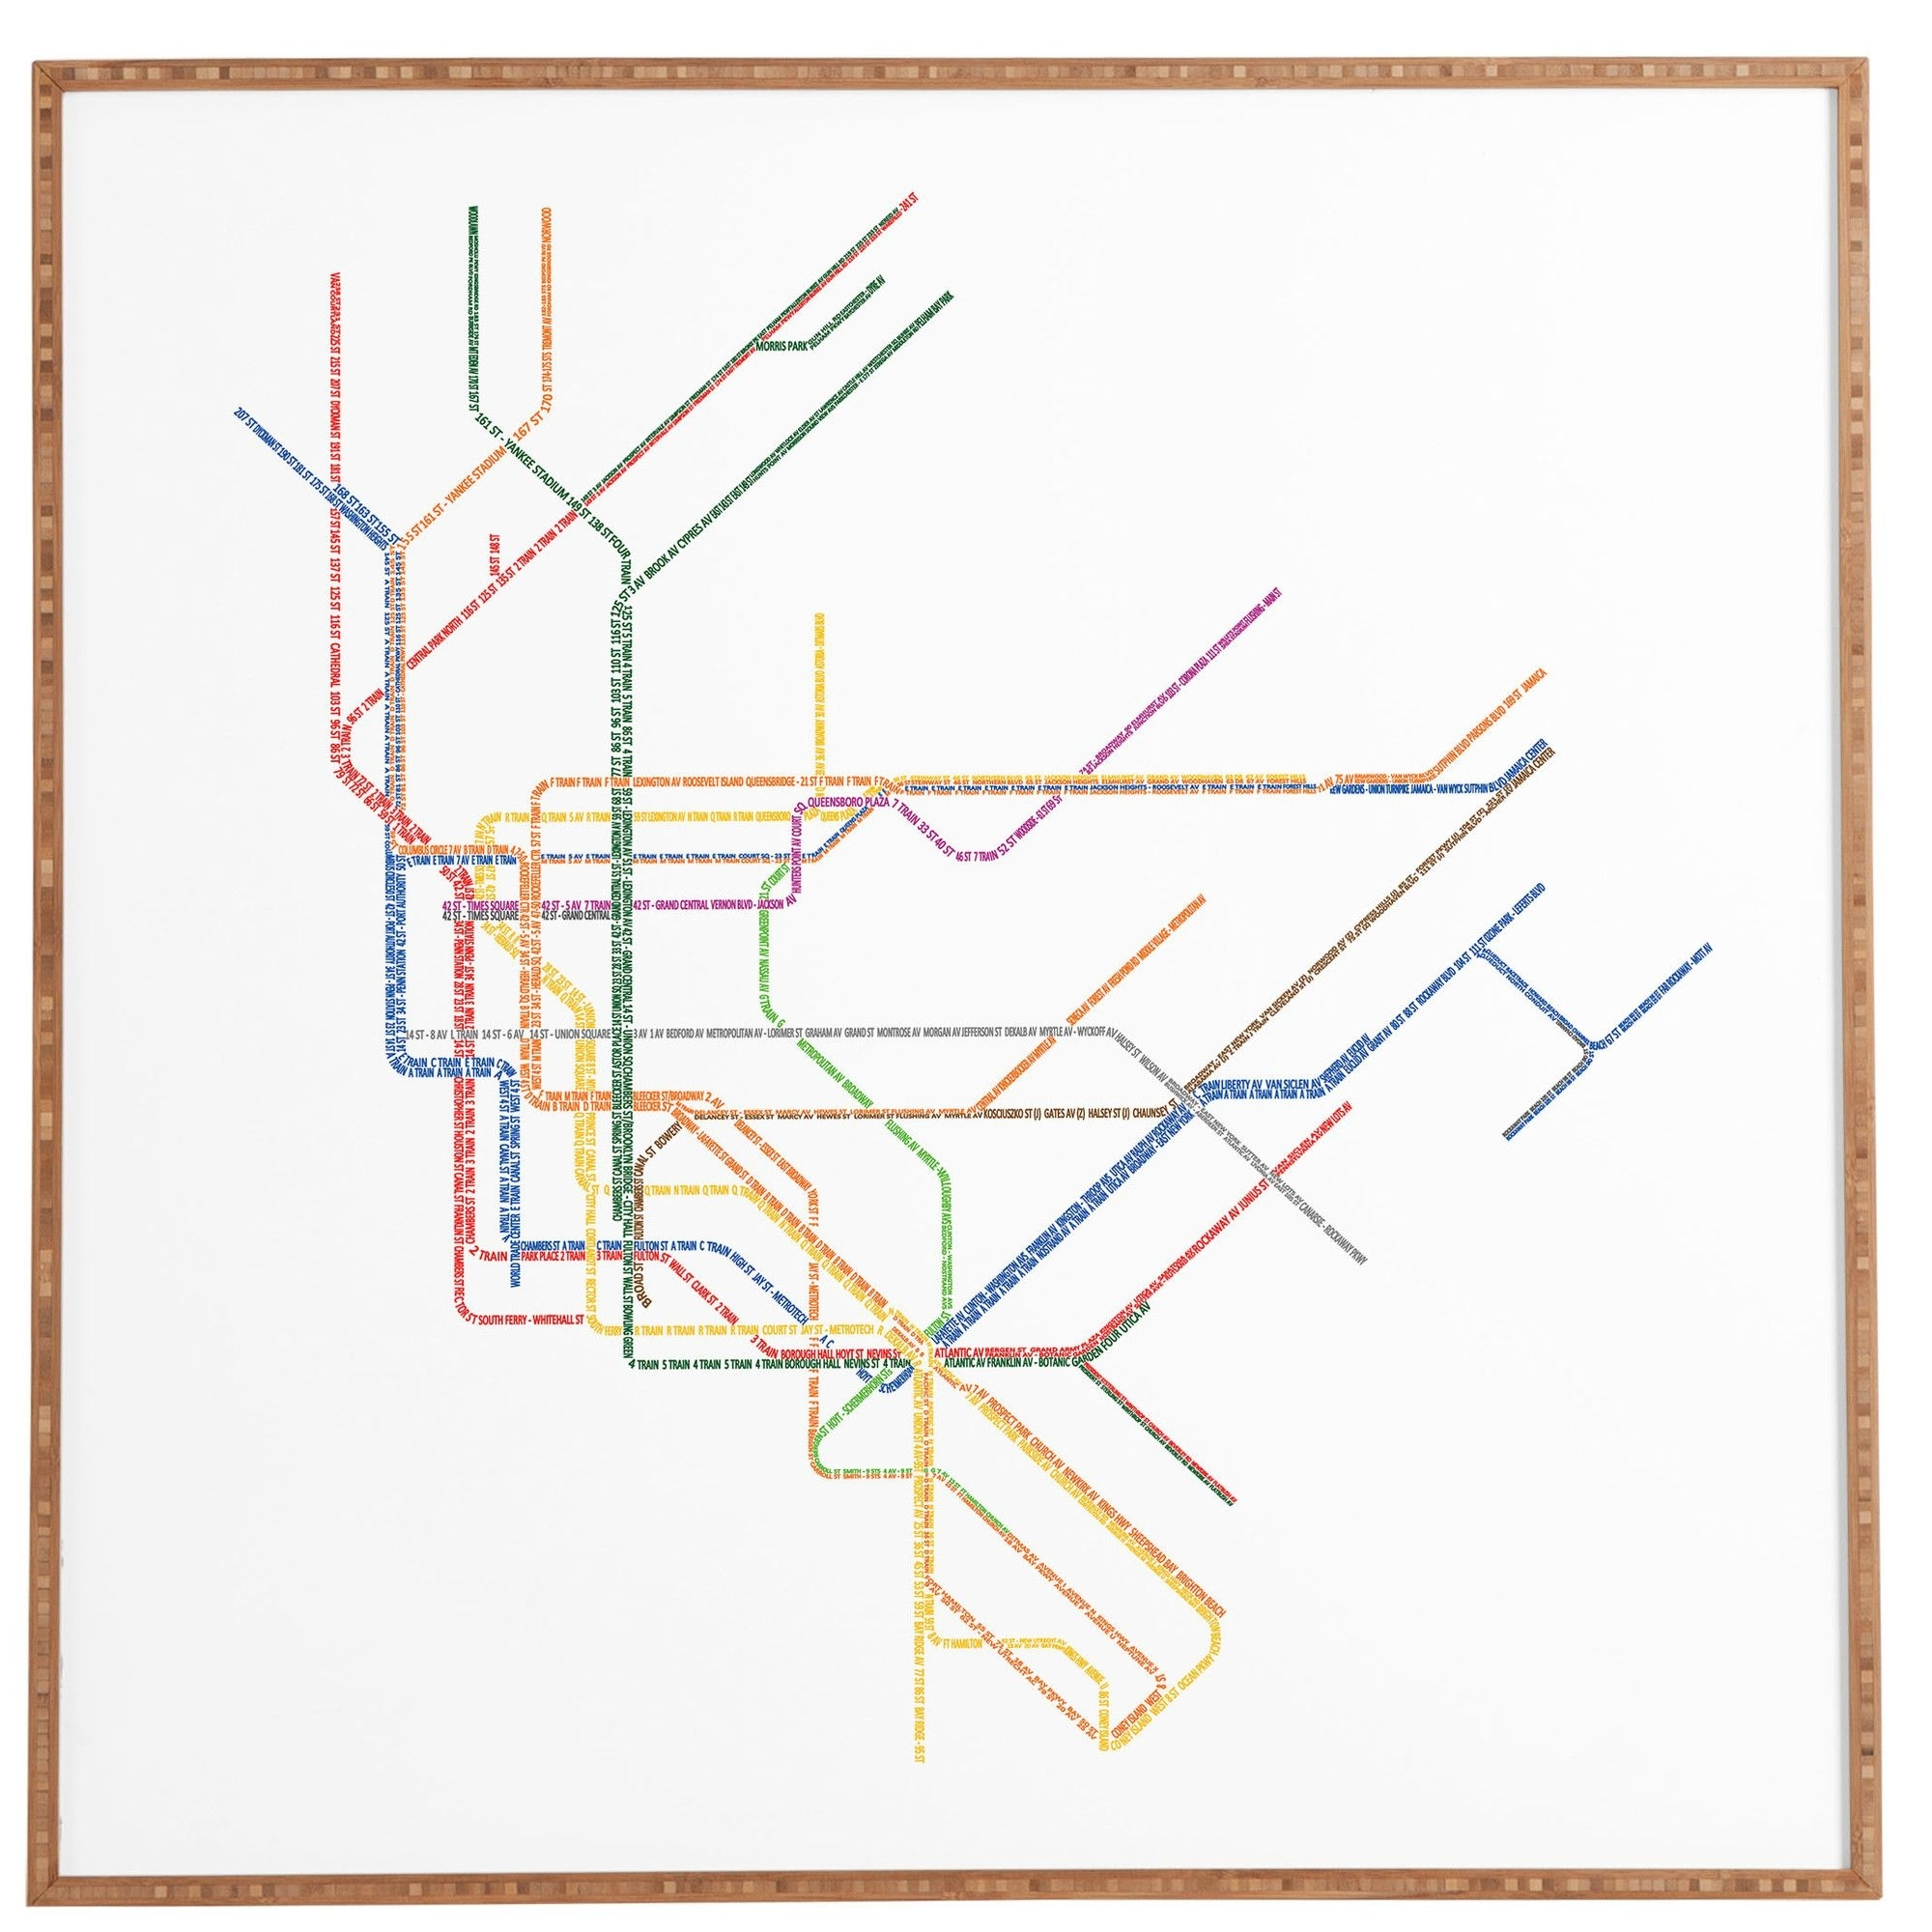 Nyc Subway Map Framed Wall Art | Products | Pinterest | Subway Map With Regard To Nyc Subway Map Wall Art (Photo 16 of 20)